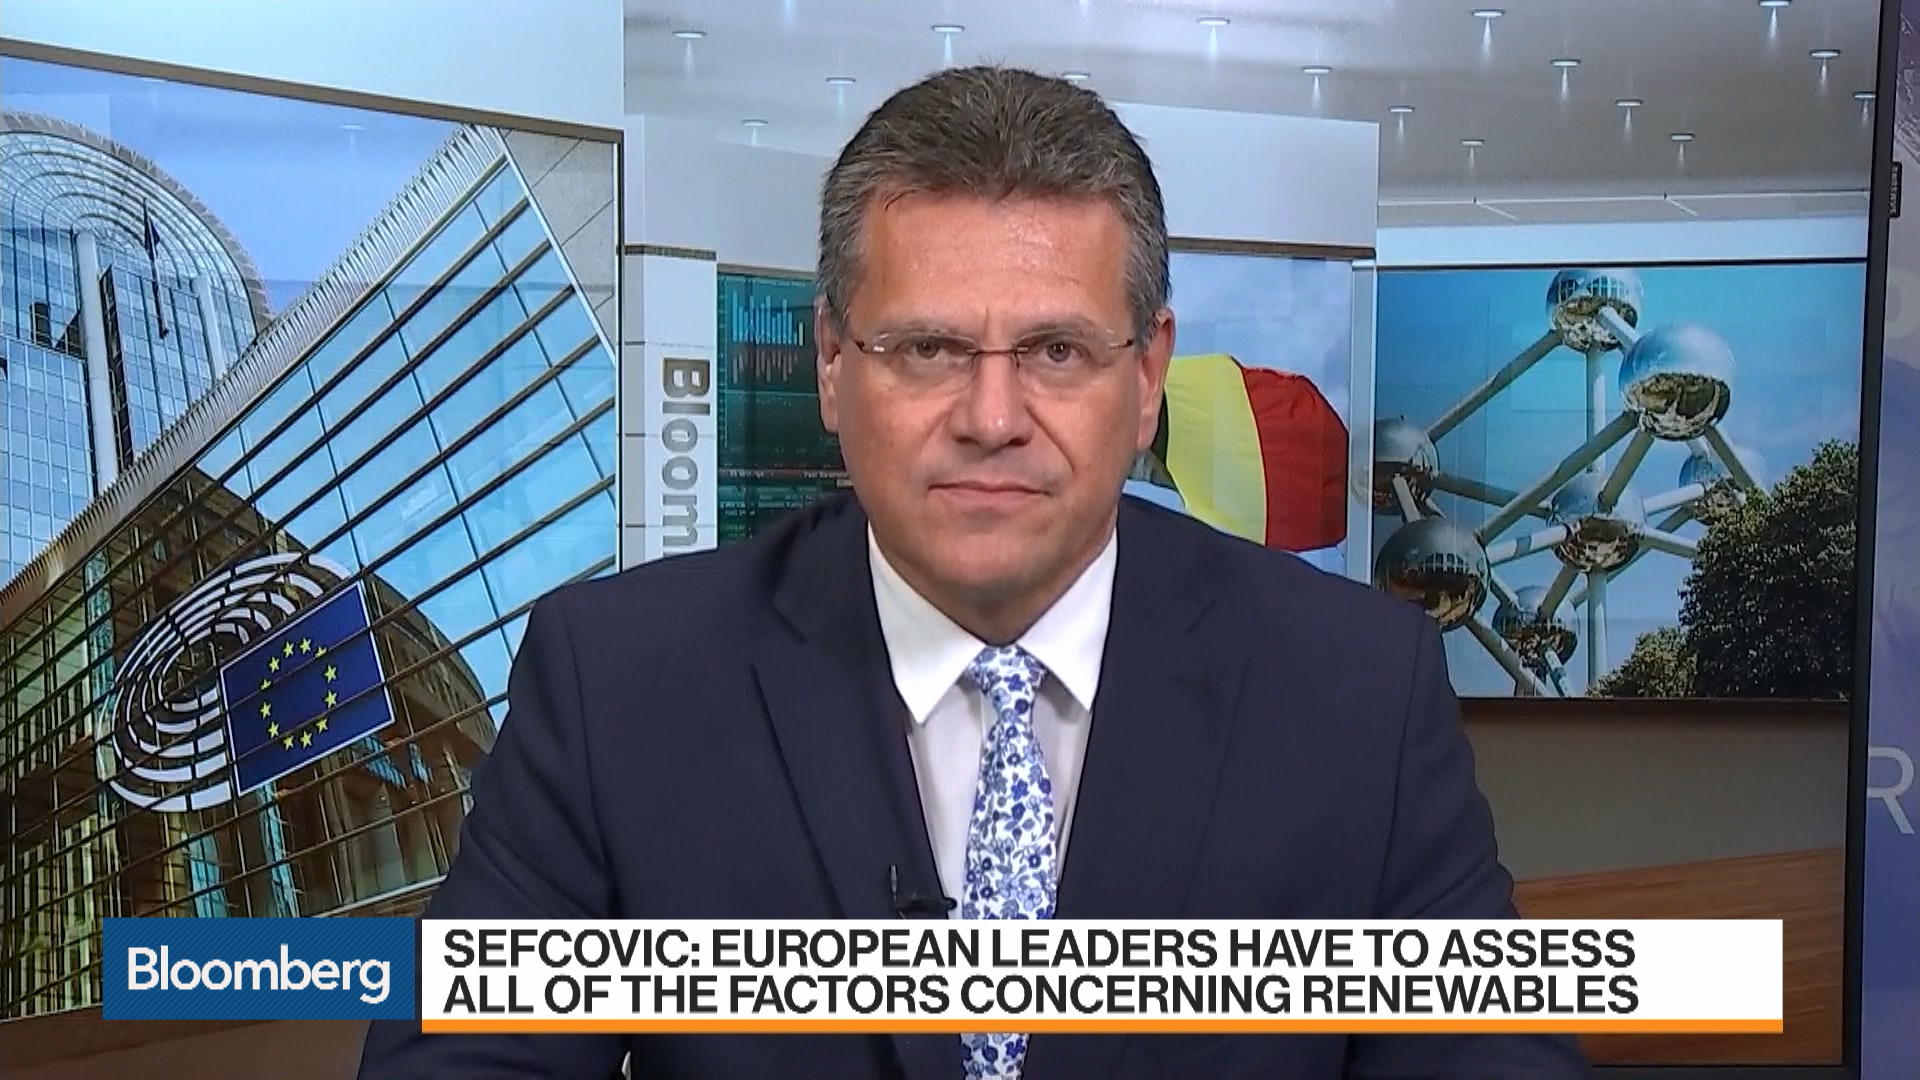 Europe's Energy Chief Says Fighting Climate Change Is an Investment